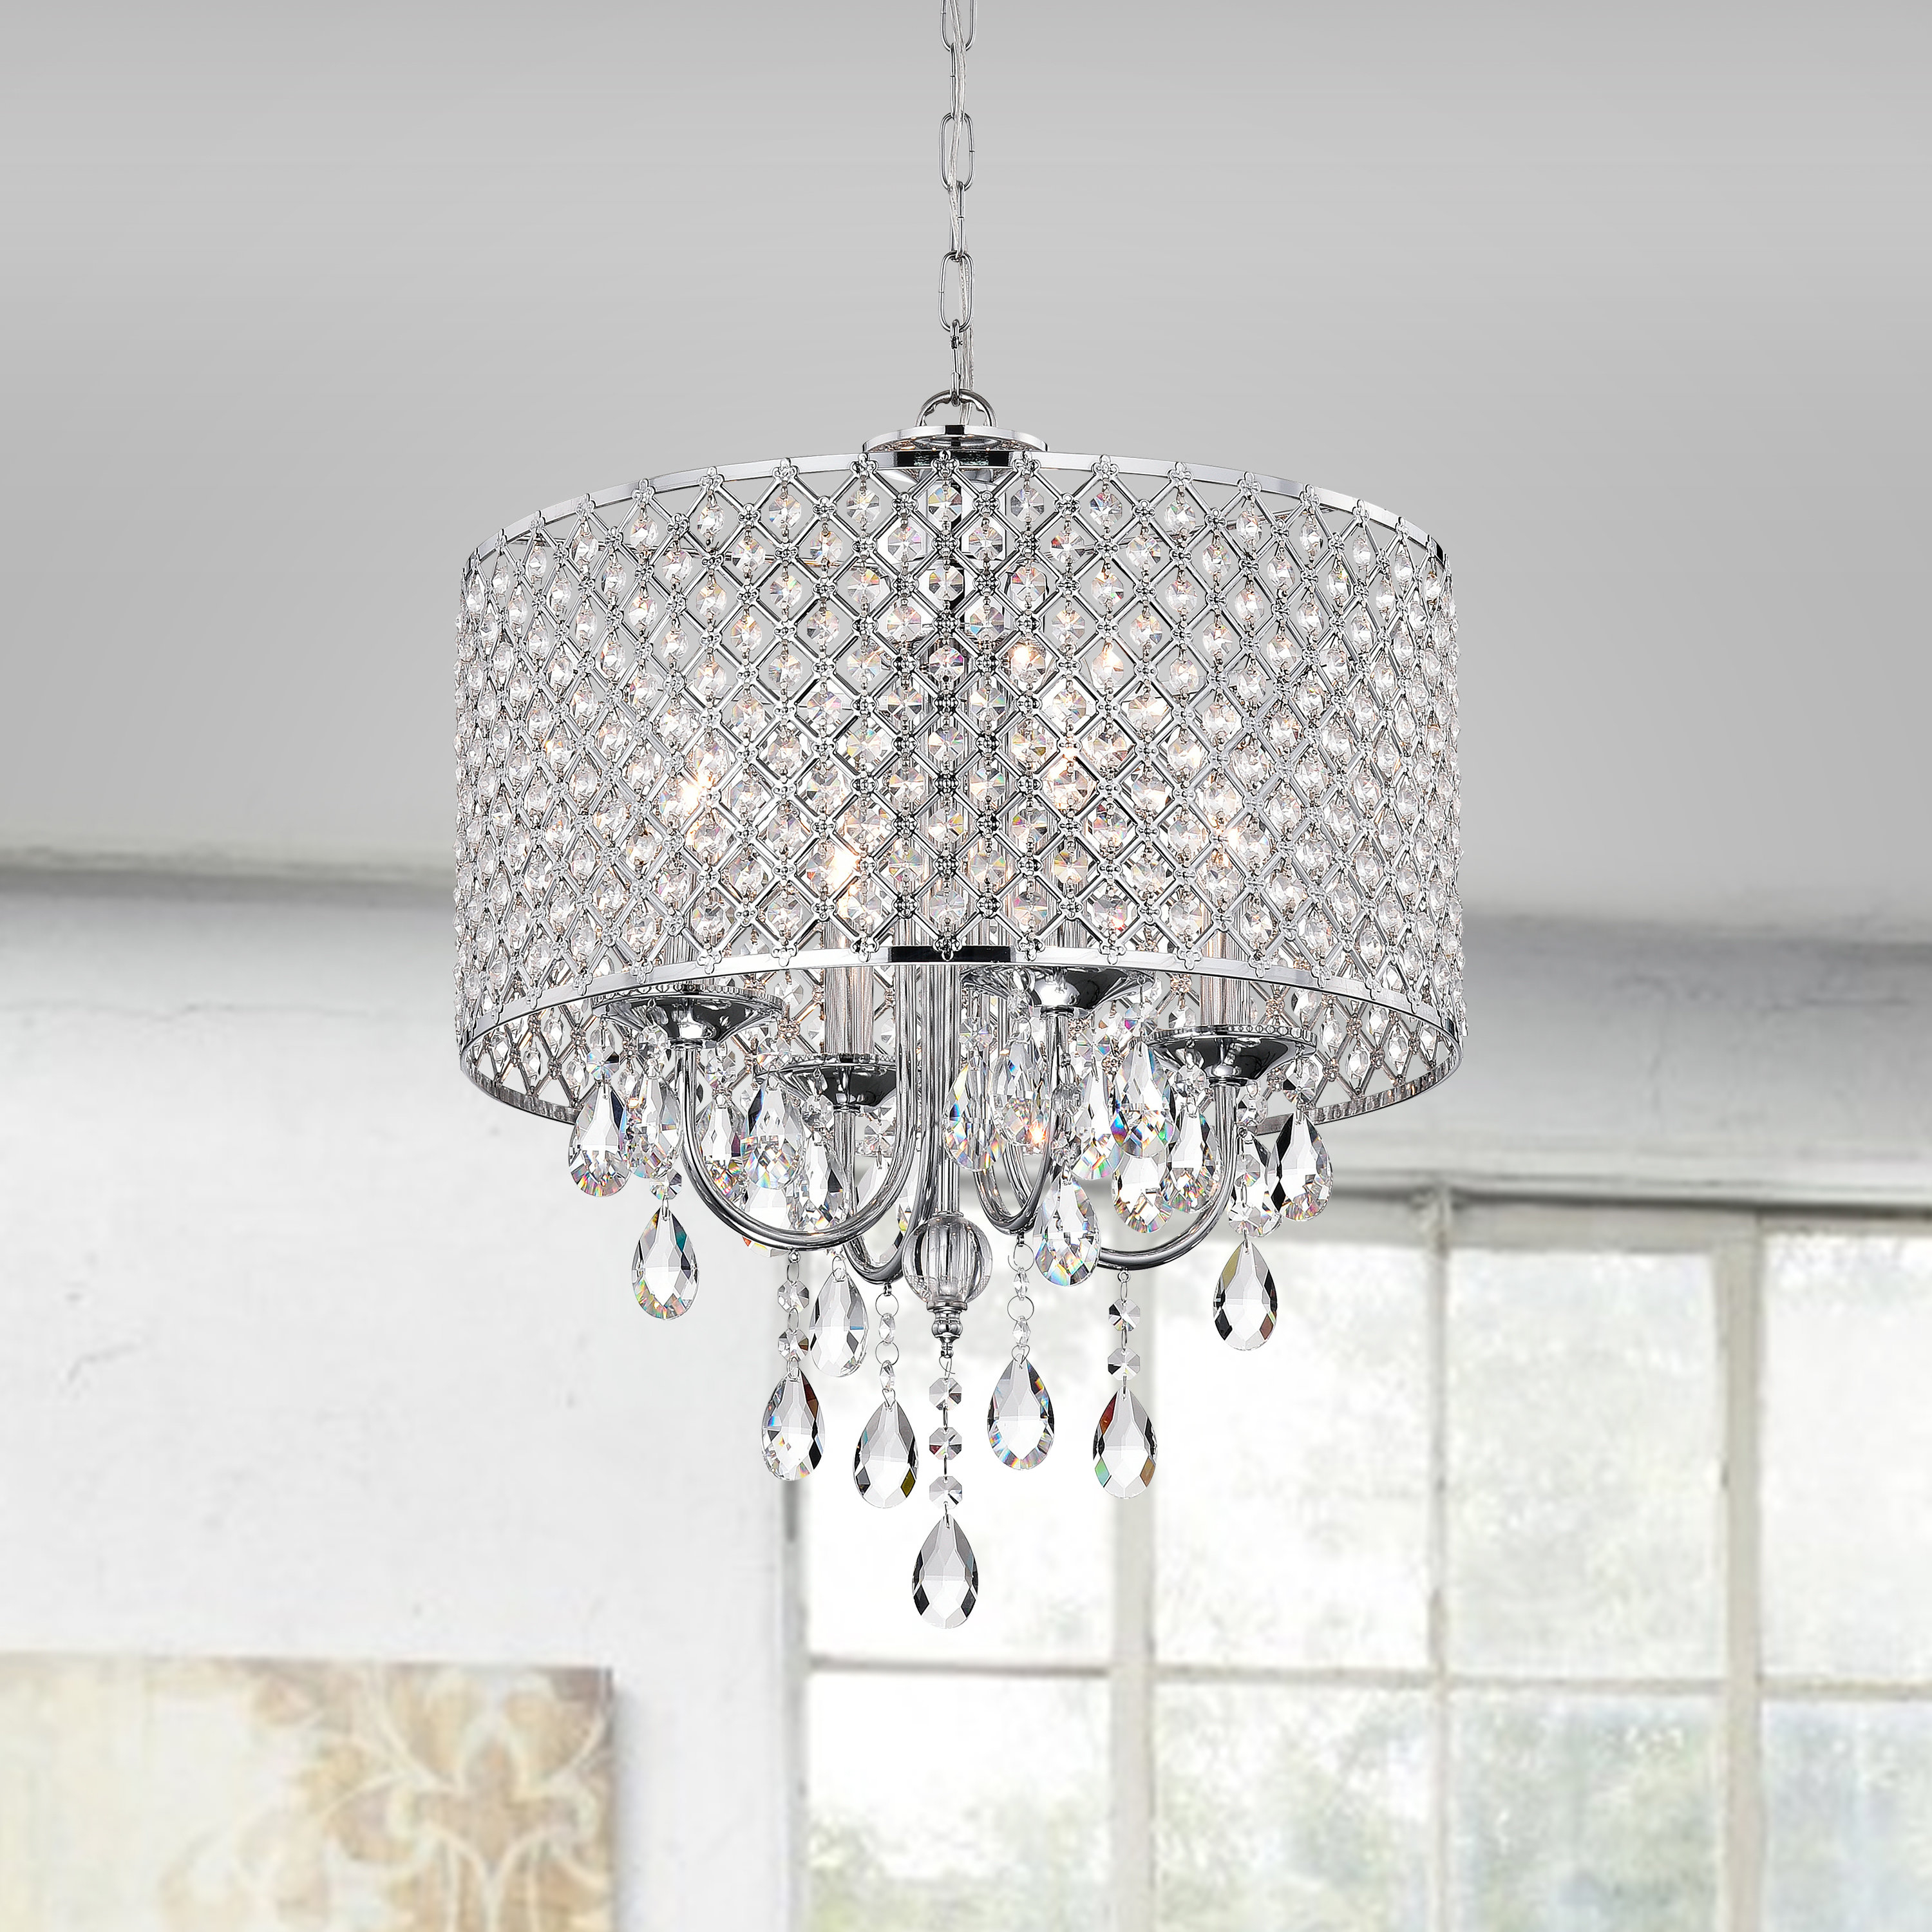 Aldgate 4 Light Crystal Chandelier Intended For Sinead 4 Light Chandeliers (View 8 of 30)